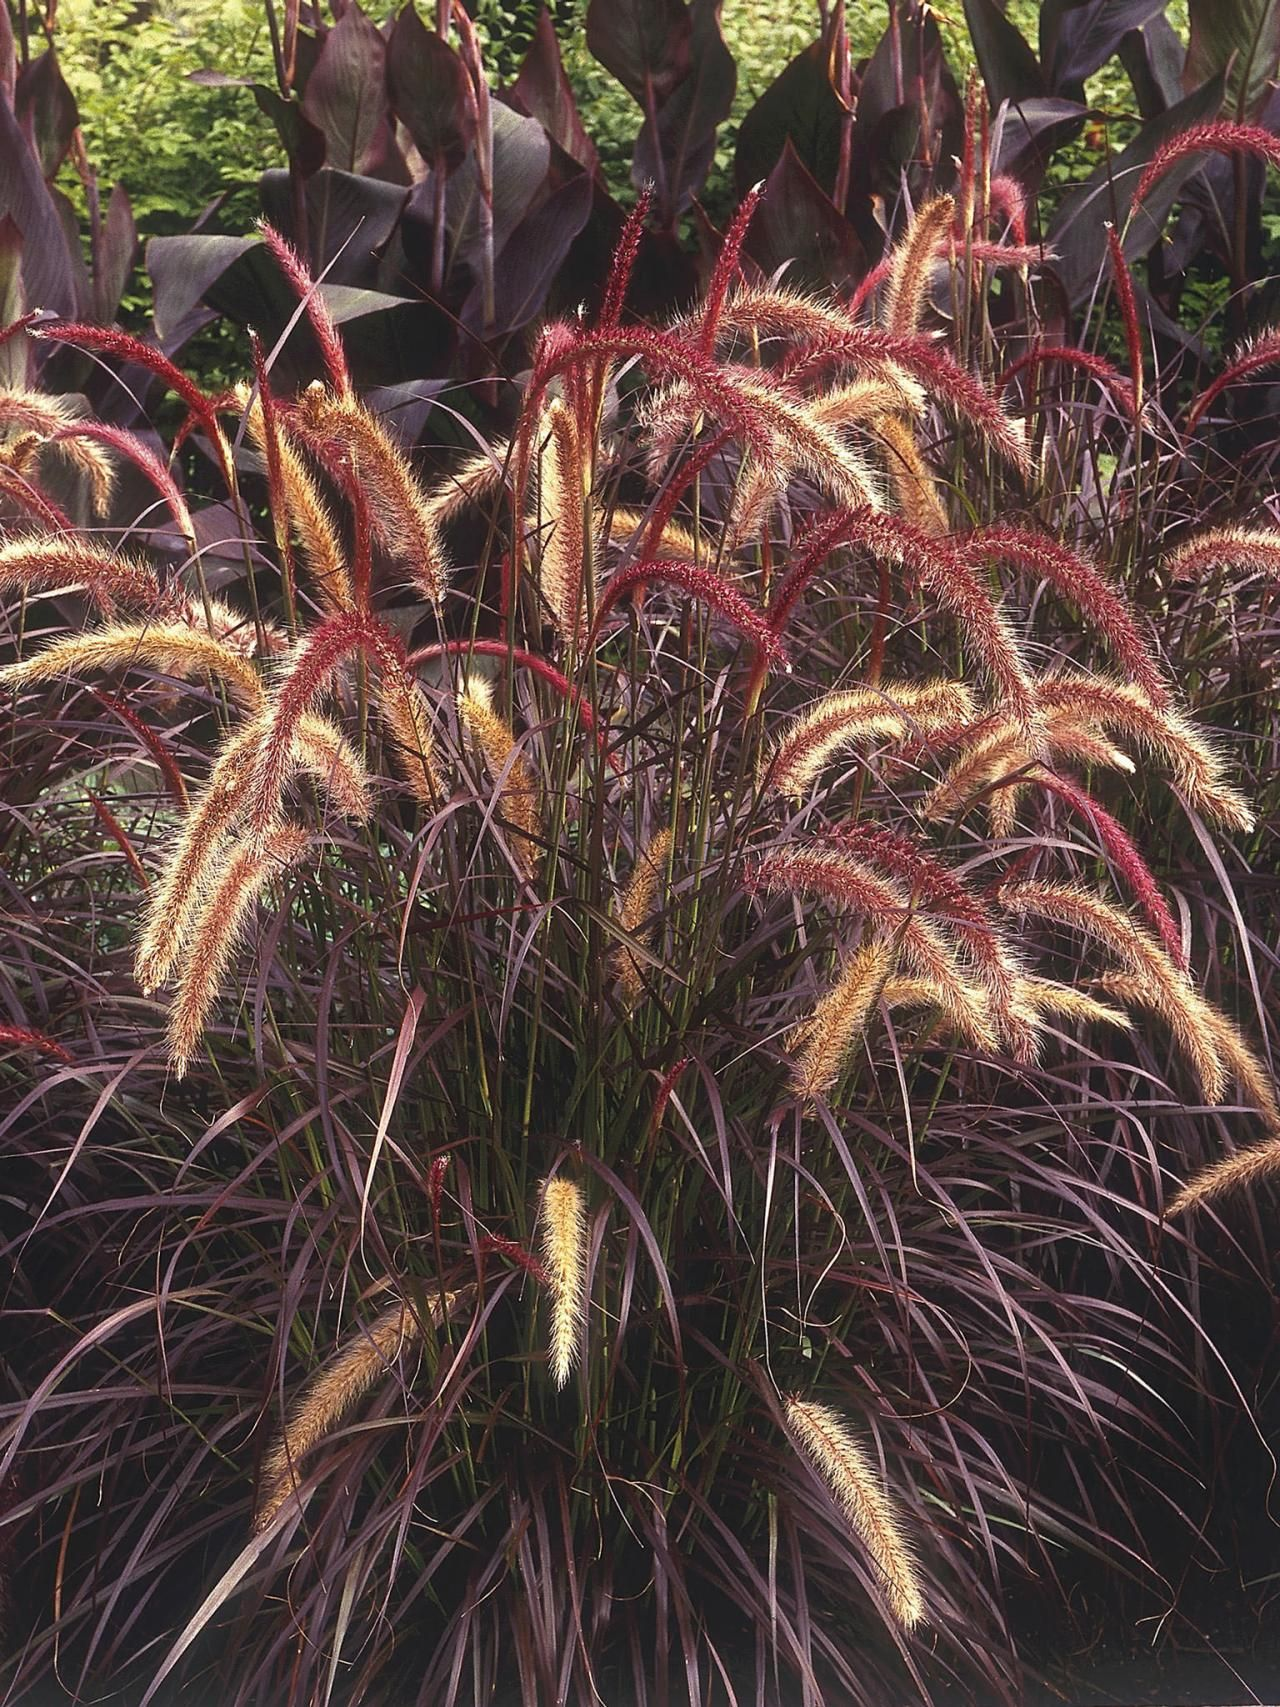 Types of ornamental grasses diy garden projects garden for Tall purple ornamental grass